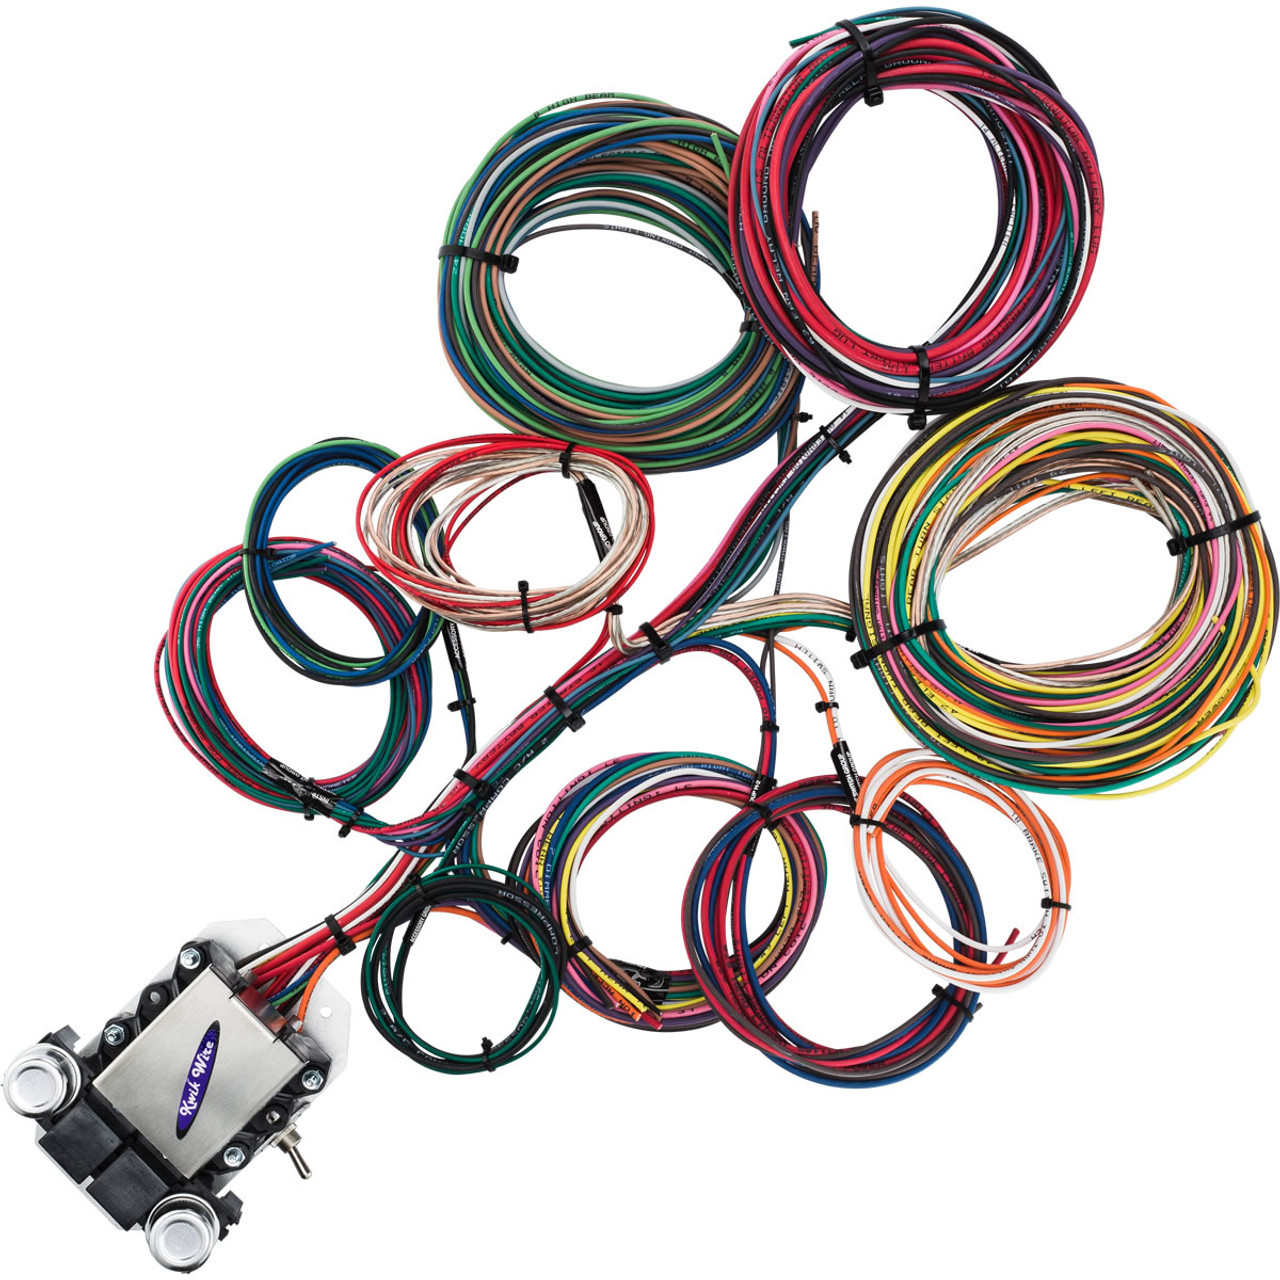 14 Circuit Wire Harness - KwikWire.com | Electrify Your Ride